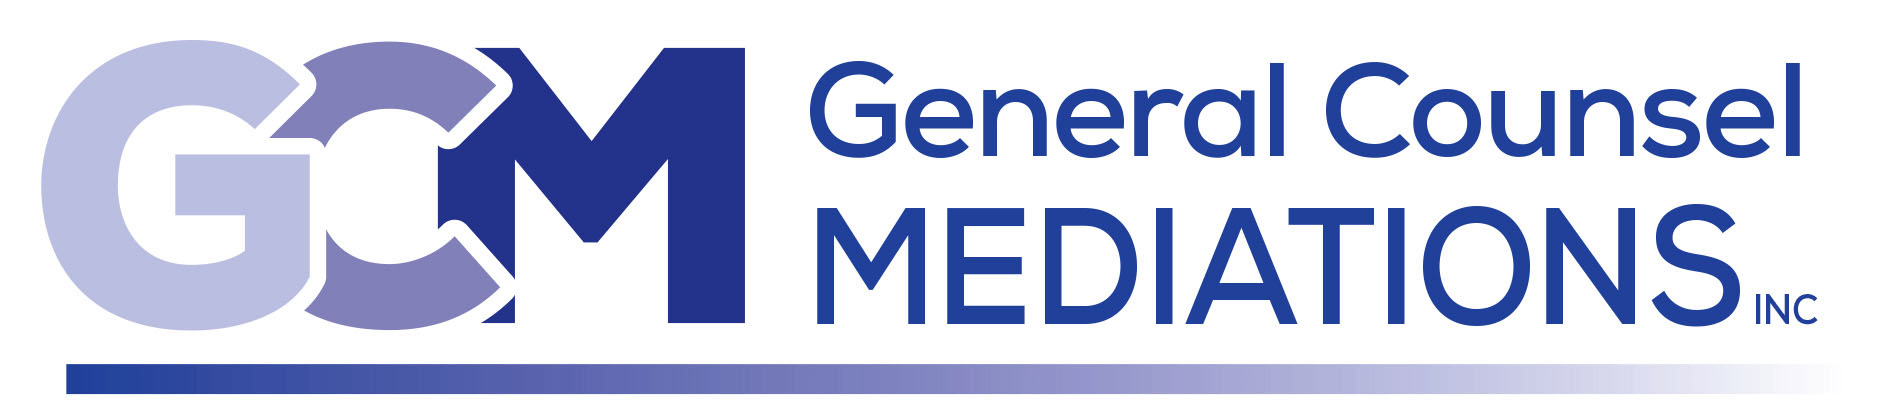 General Counsel Mediations, Inc.